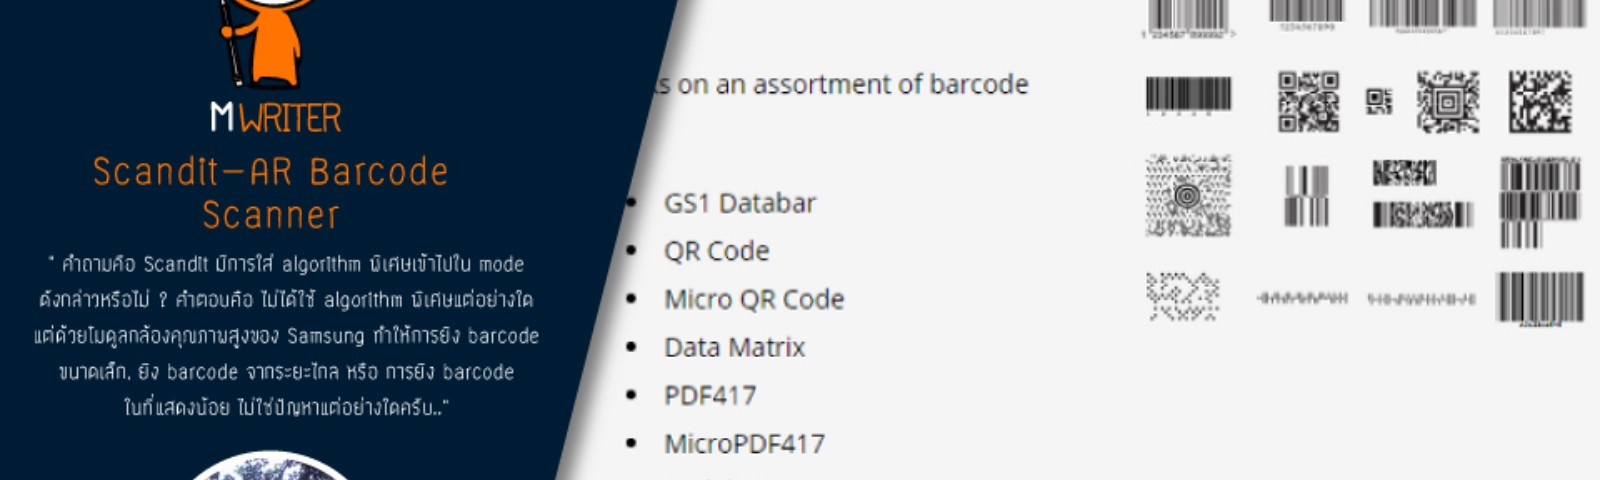 Archive of stories about Barcode Scanner – Medium